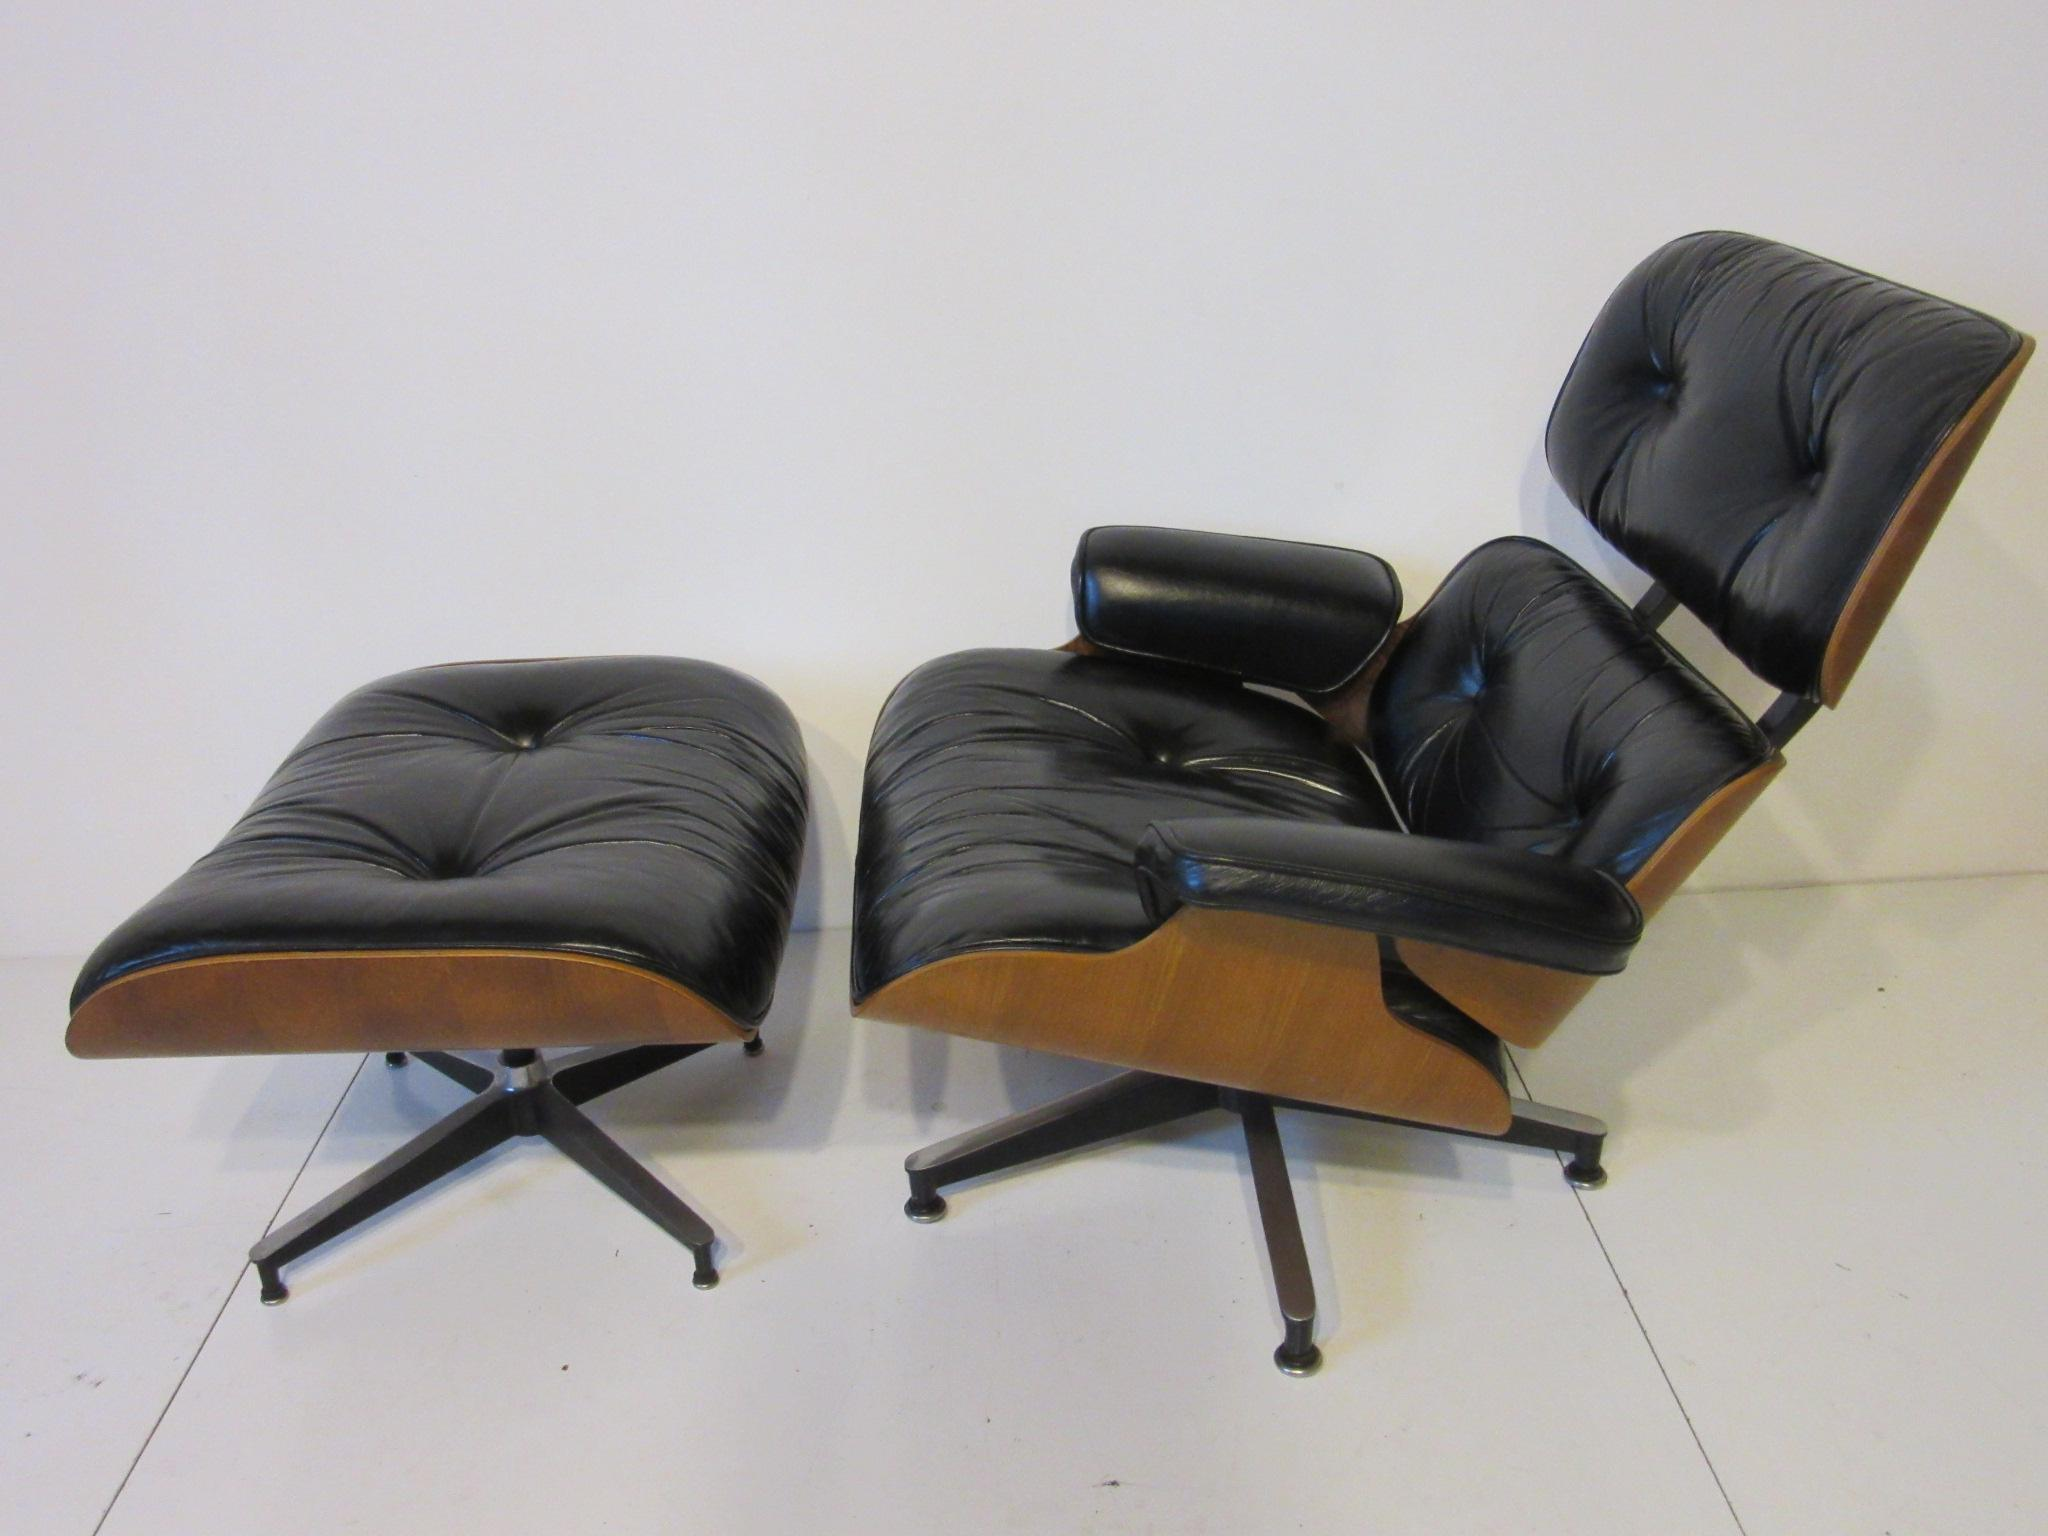 Beau Mid Century Modern Eames 670 Lounge Chair And Ottoman By Herman Miller For  Sale